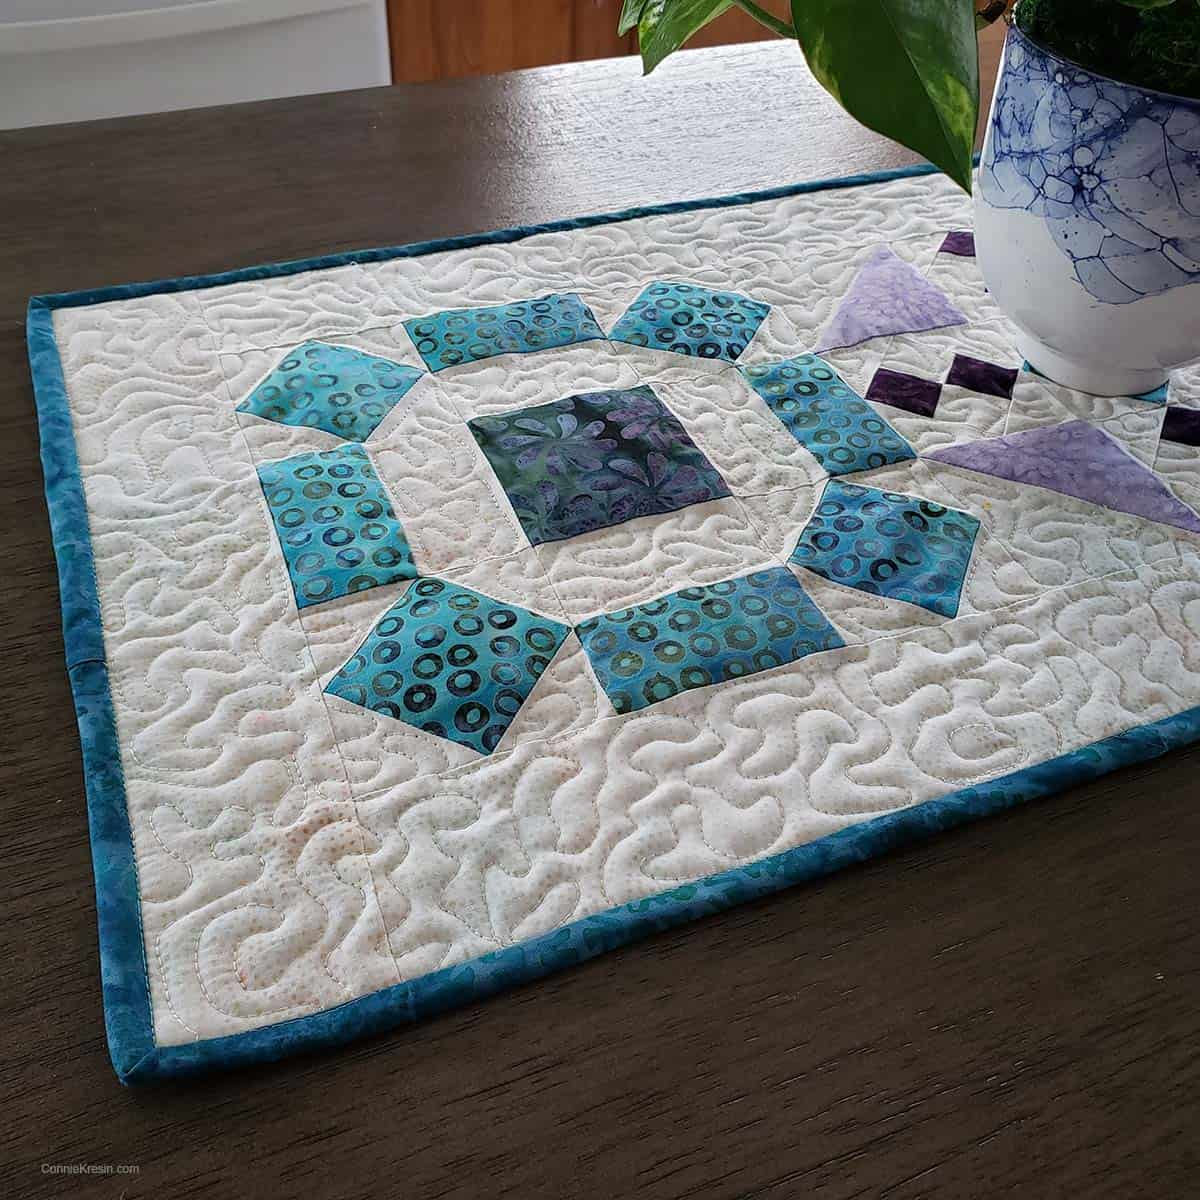 Binding on Board Game teal table runner